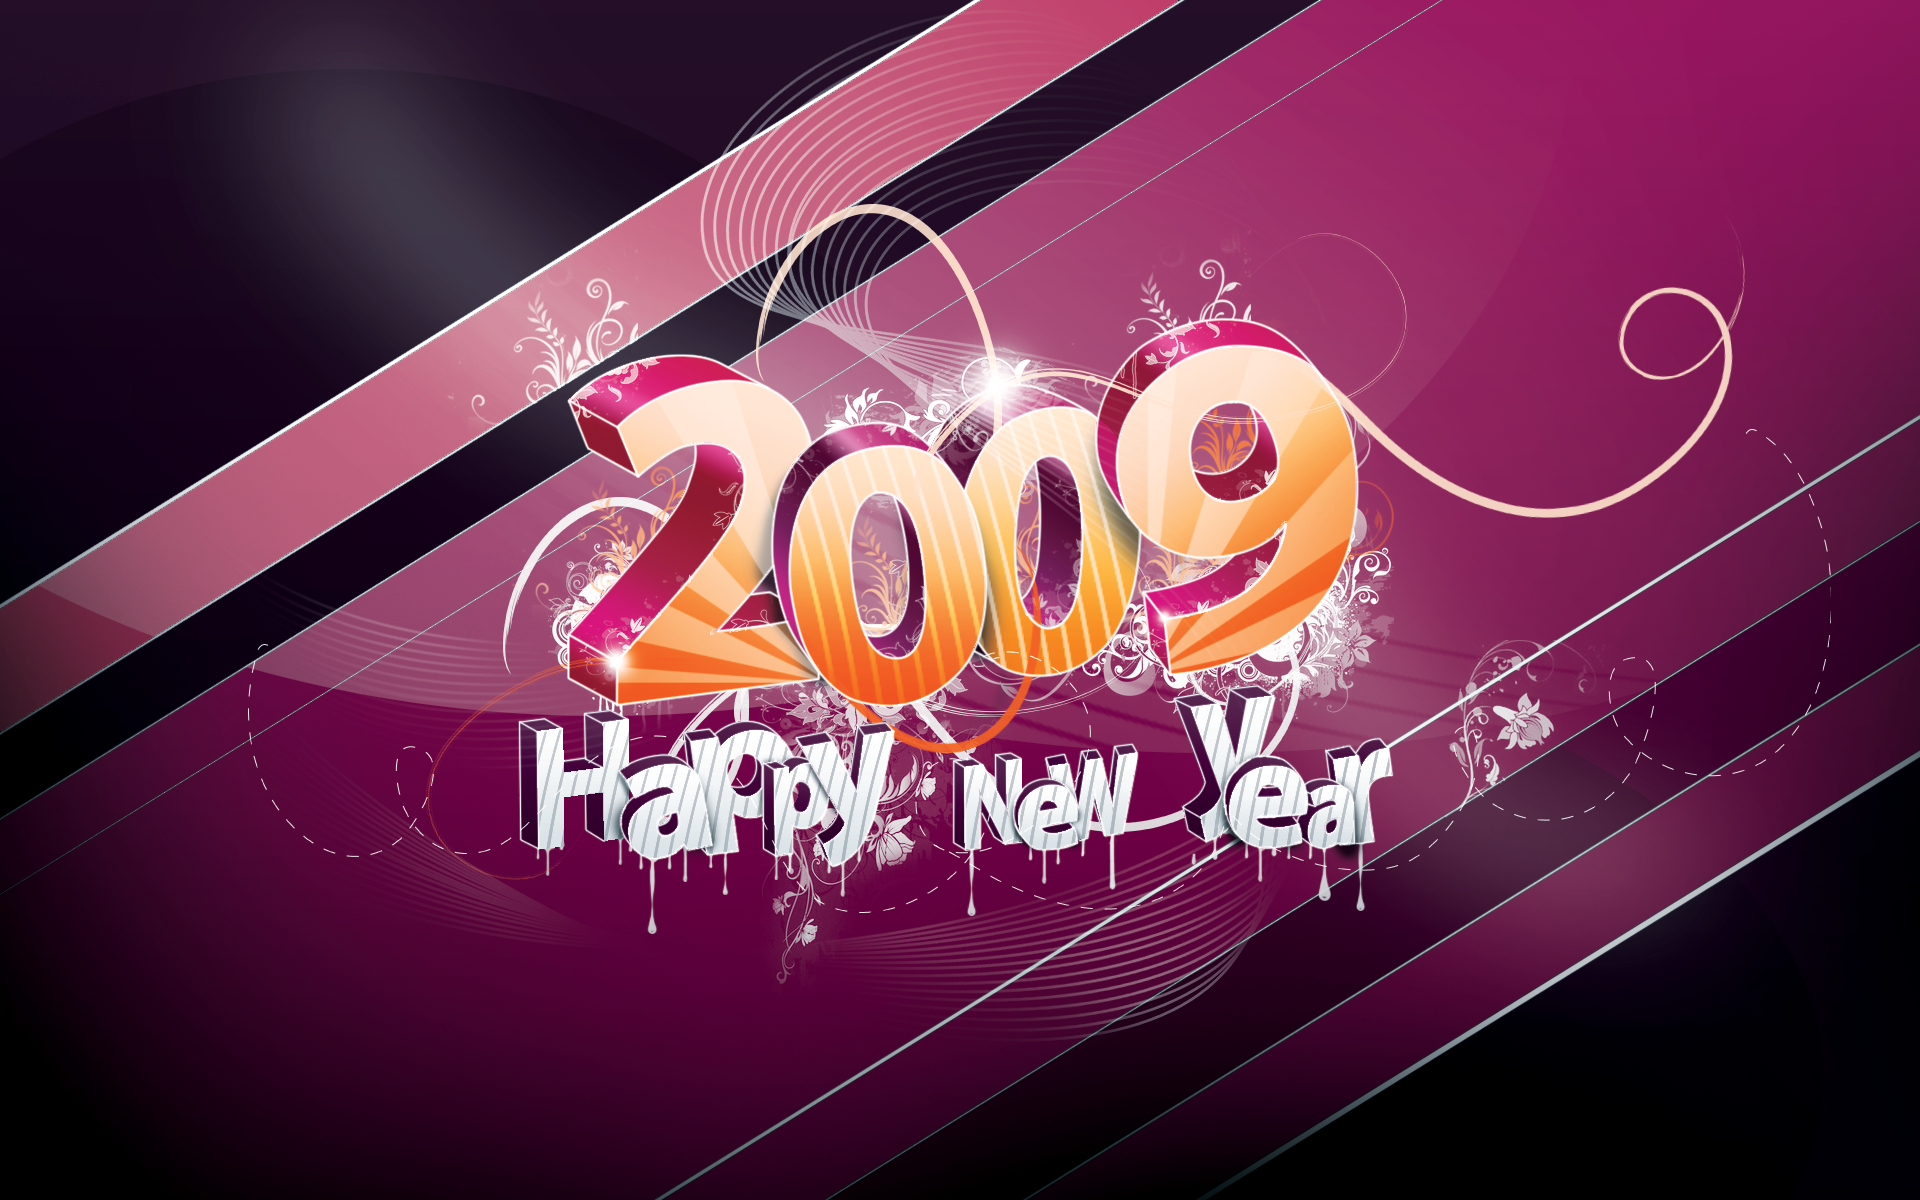 Download: Happy New Year – 2009 HD Wallpaper